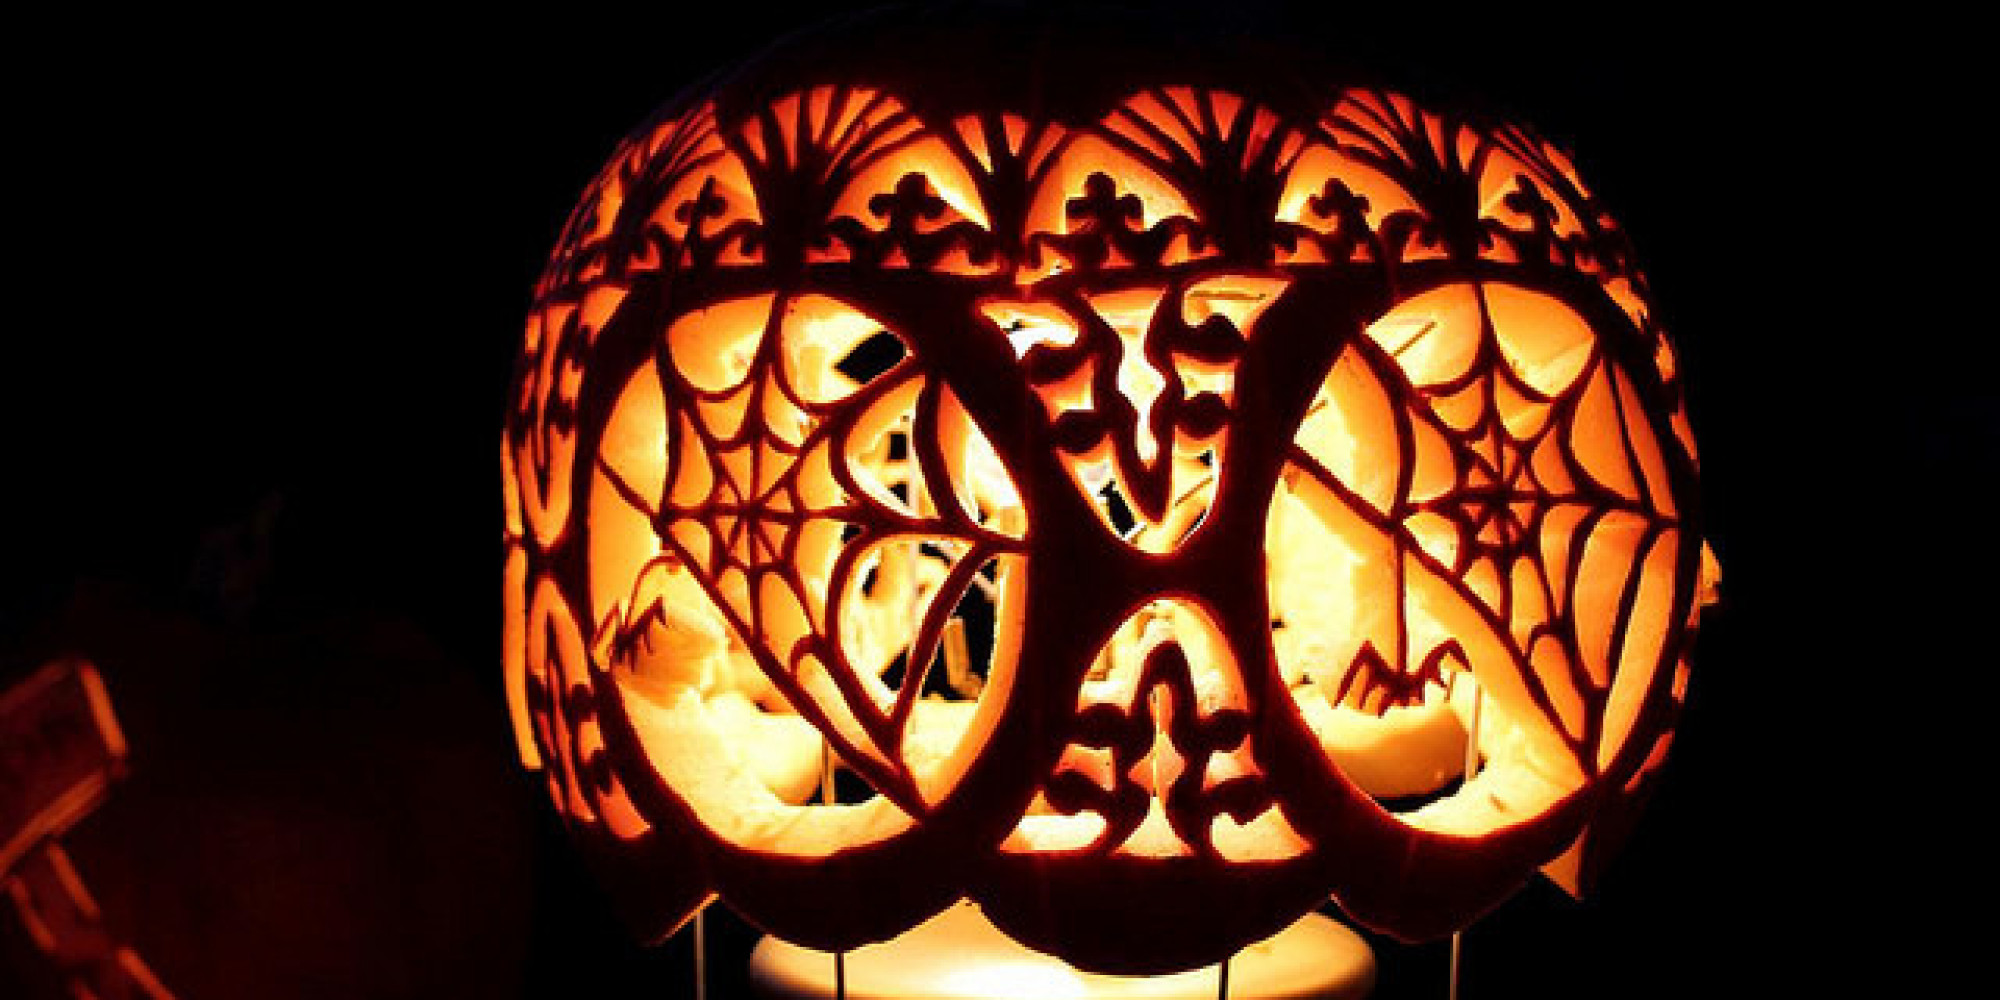 31 Pumpkin Carving Ideas For Overly Ambitious People (PHOTOS) | HuffPost